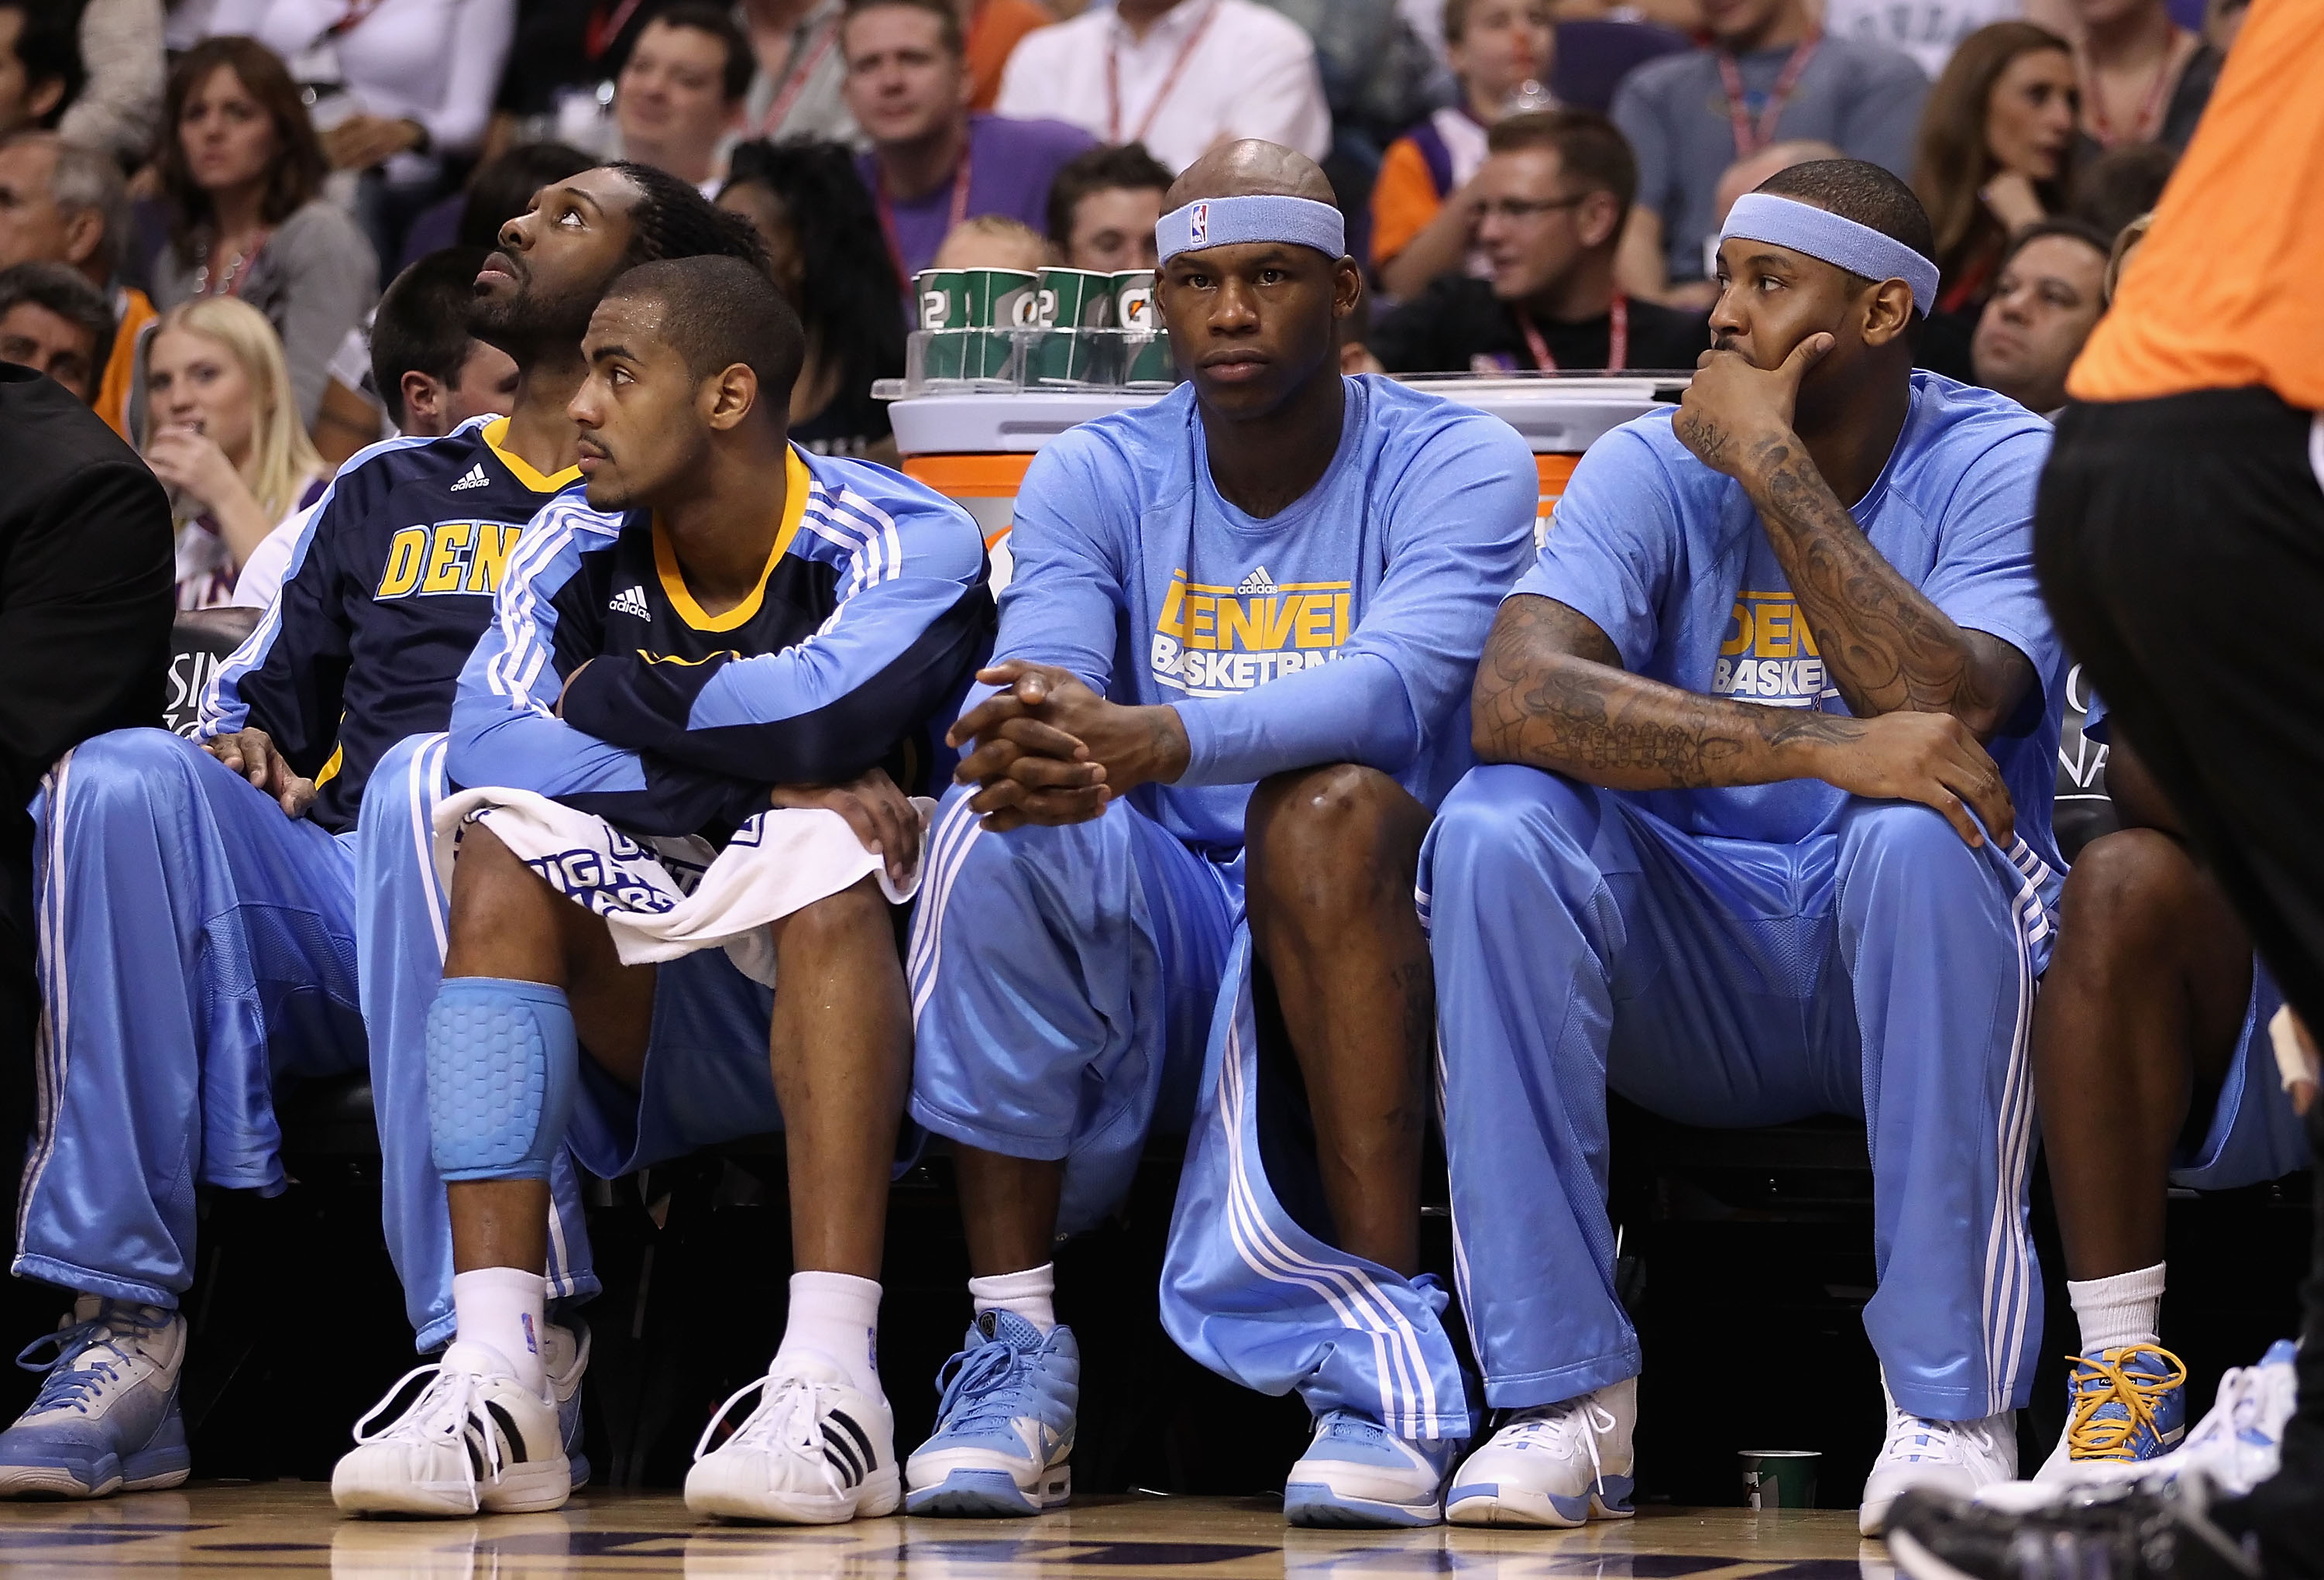 PHOENIX - OCTOBER 22:  Al Harrington #6 of the Denver Nuggets watches from the bench during the preseason NBA game against the Phoenix Suns at US Airways Center on October 22, 2010 in Phoenix, Arizona. NOTE TO USER: User expressly acknowledges and agrees